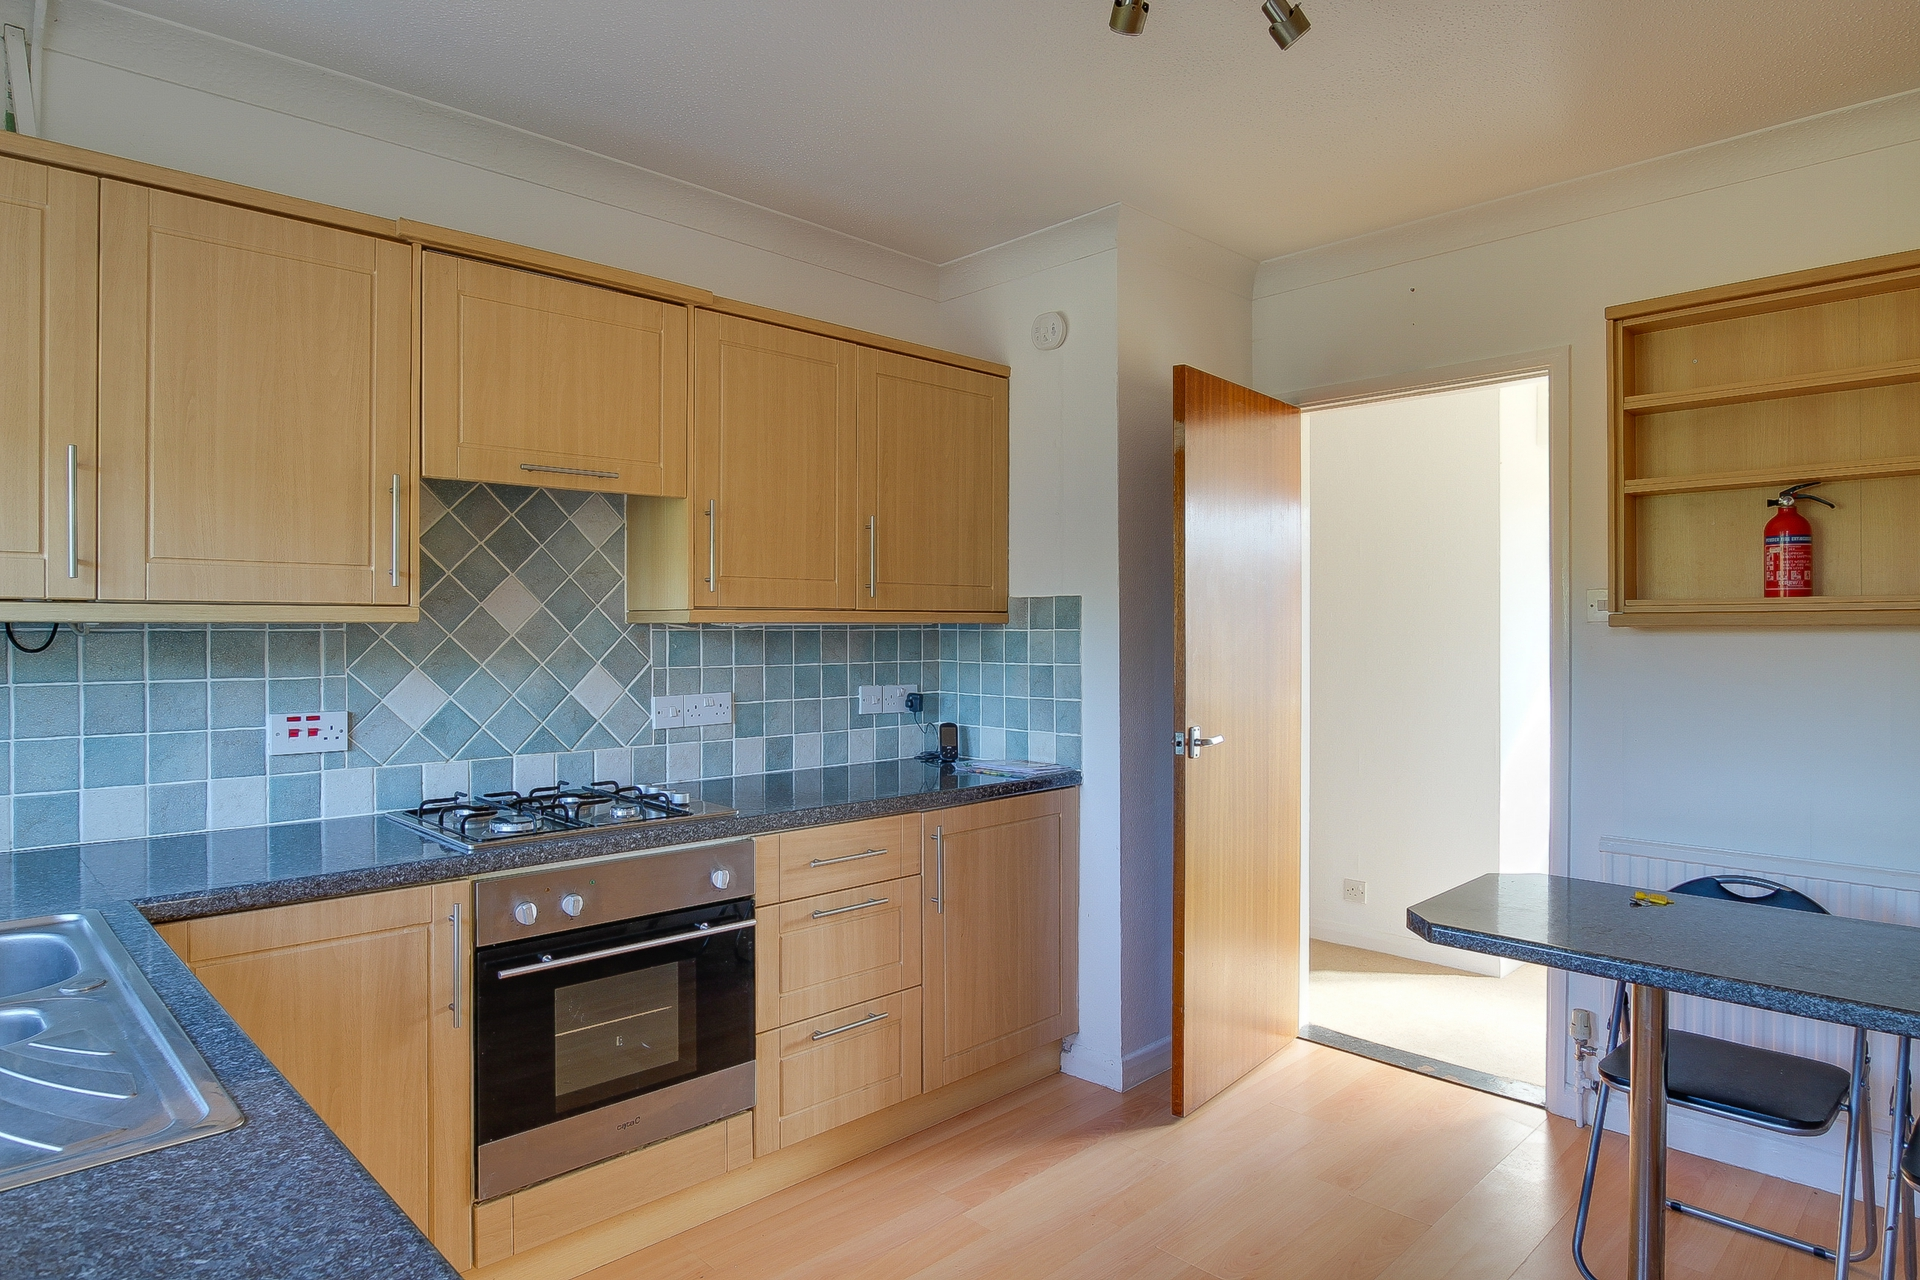 3 bed bungalow to rent in Cheesmans Close, Minster, CT12 3